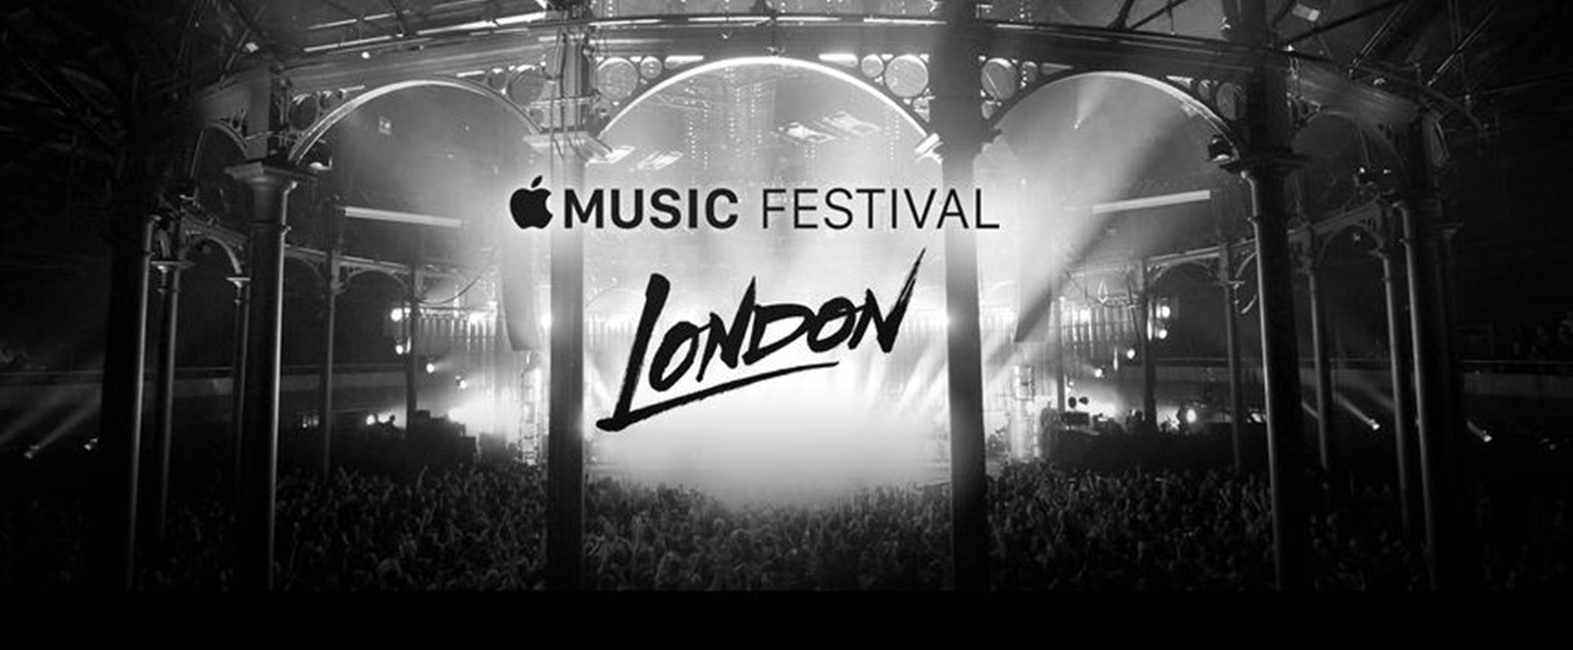 Apple Music Festival Londra streaming